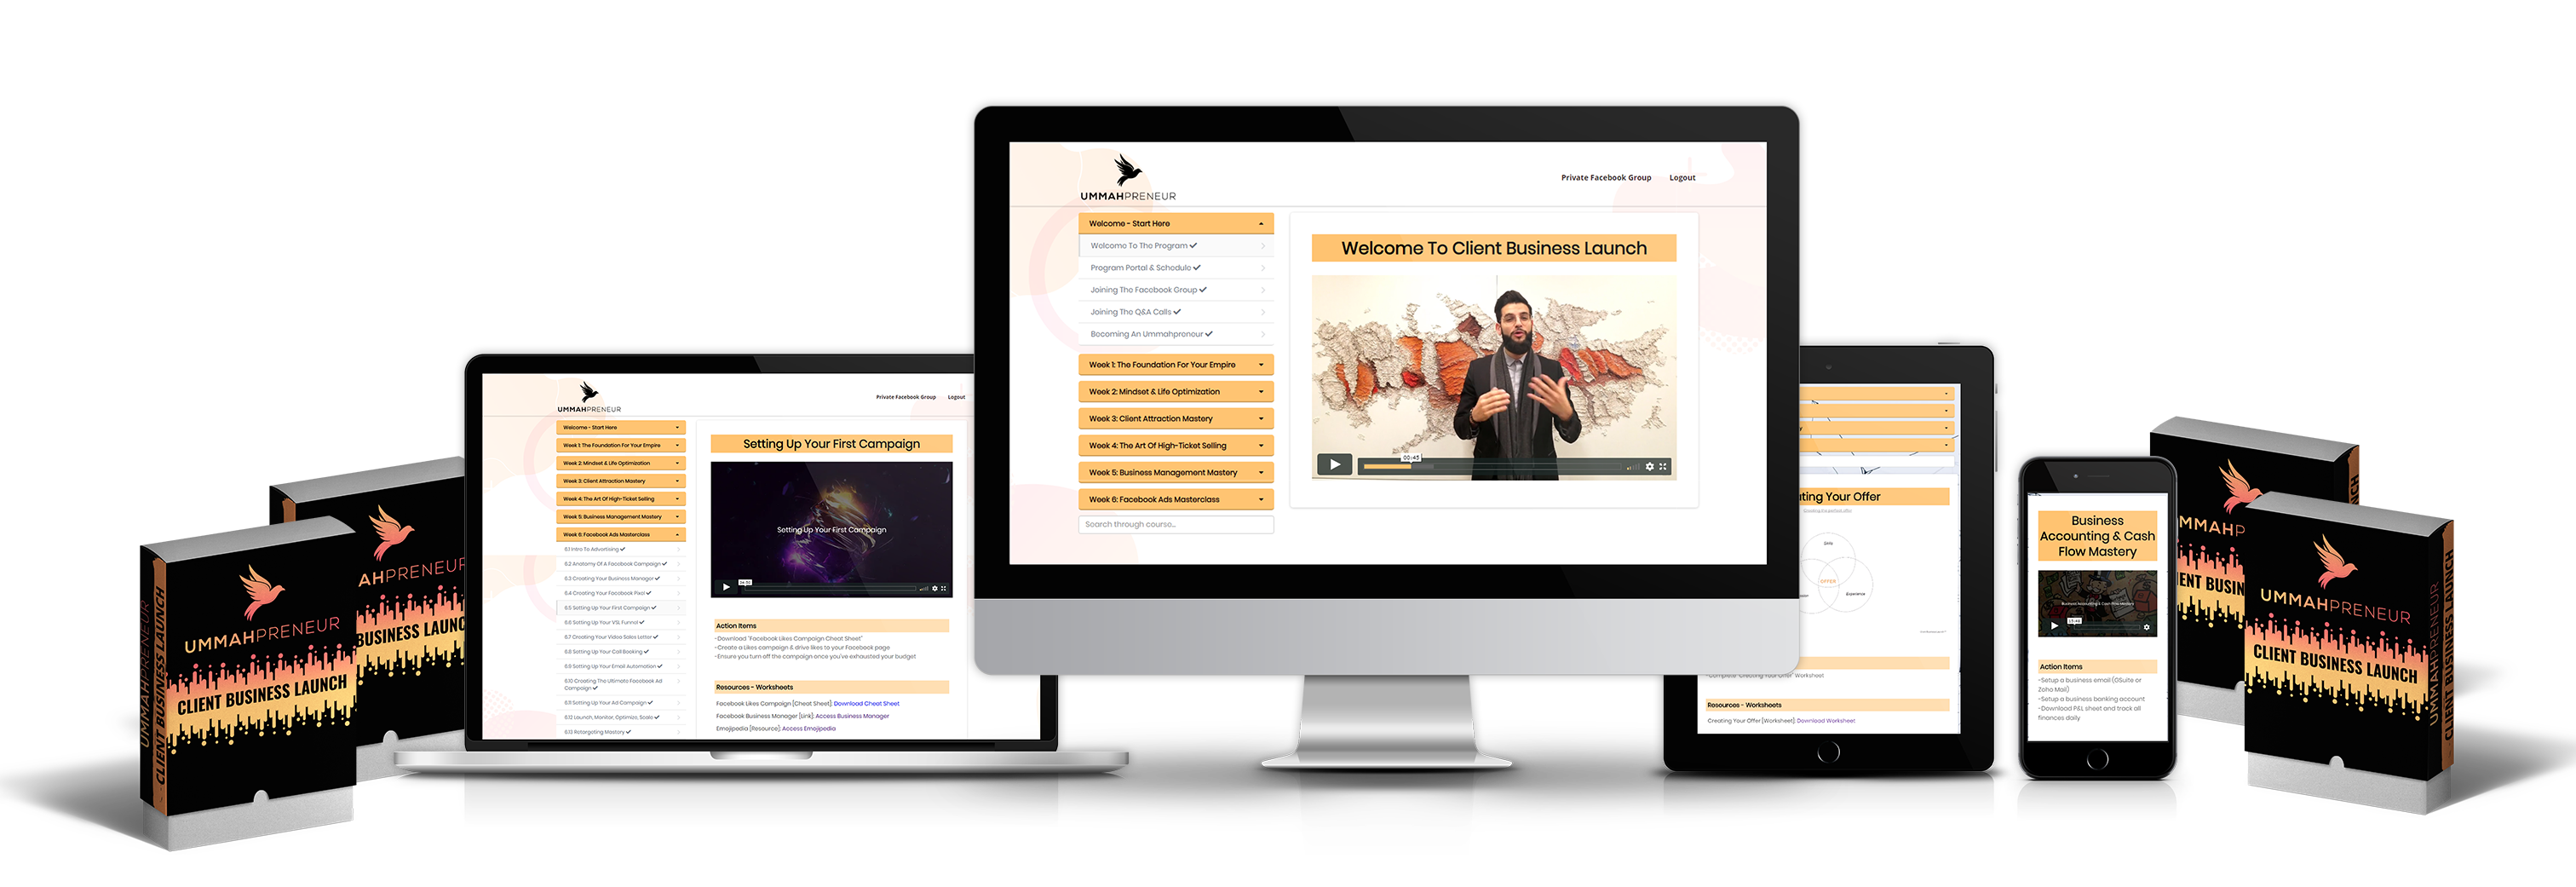 Client Business Launch- Start Your Own Online Business